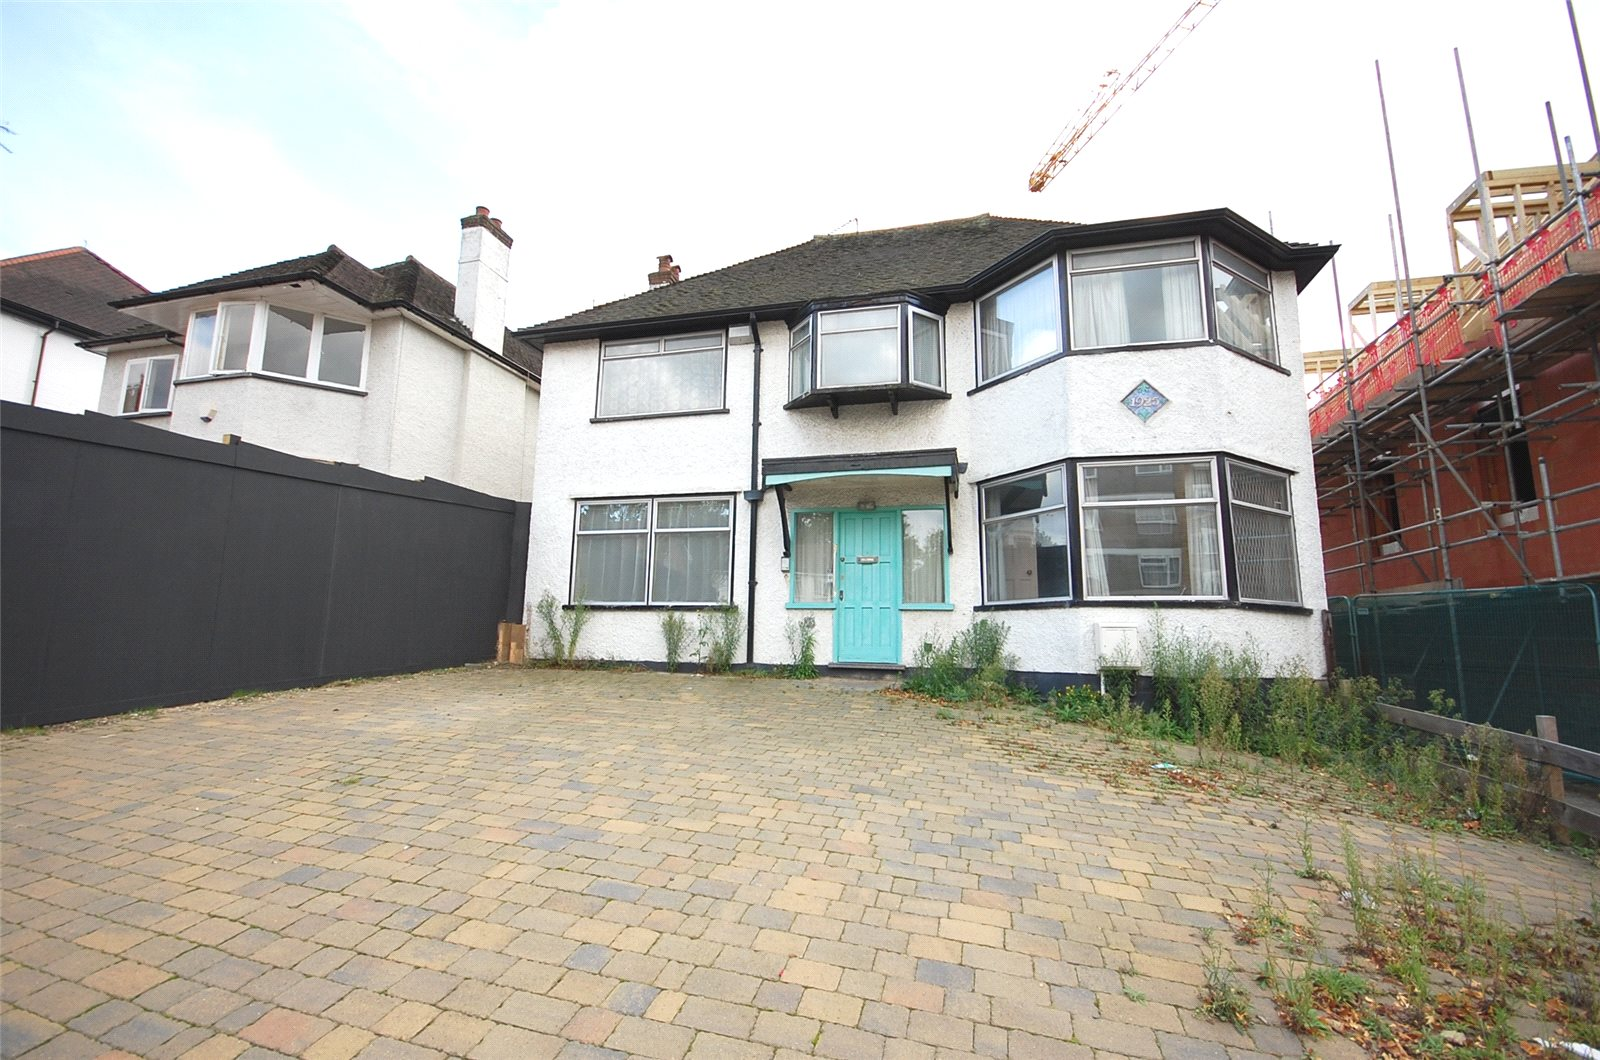 5 Bedrooms Detached House for sale in Wickliffe Avenue Finchley N3